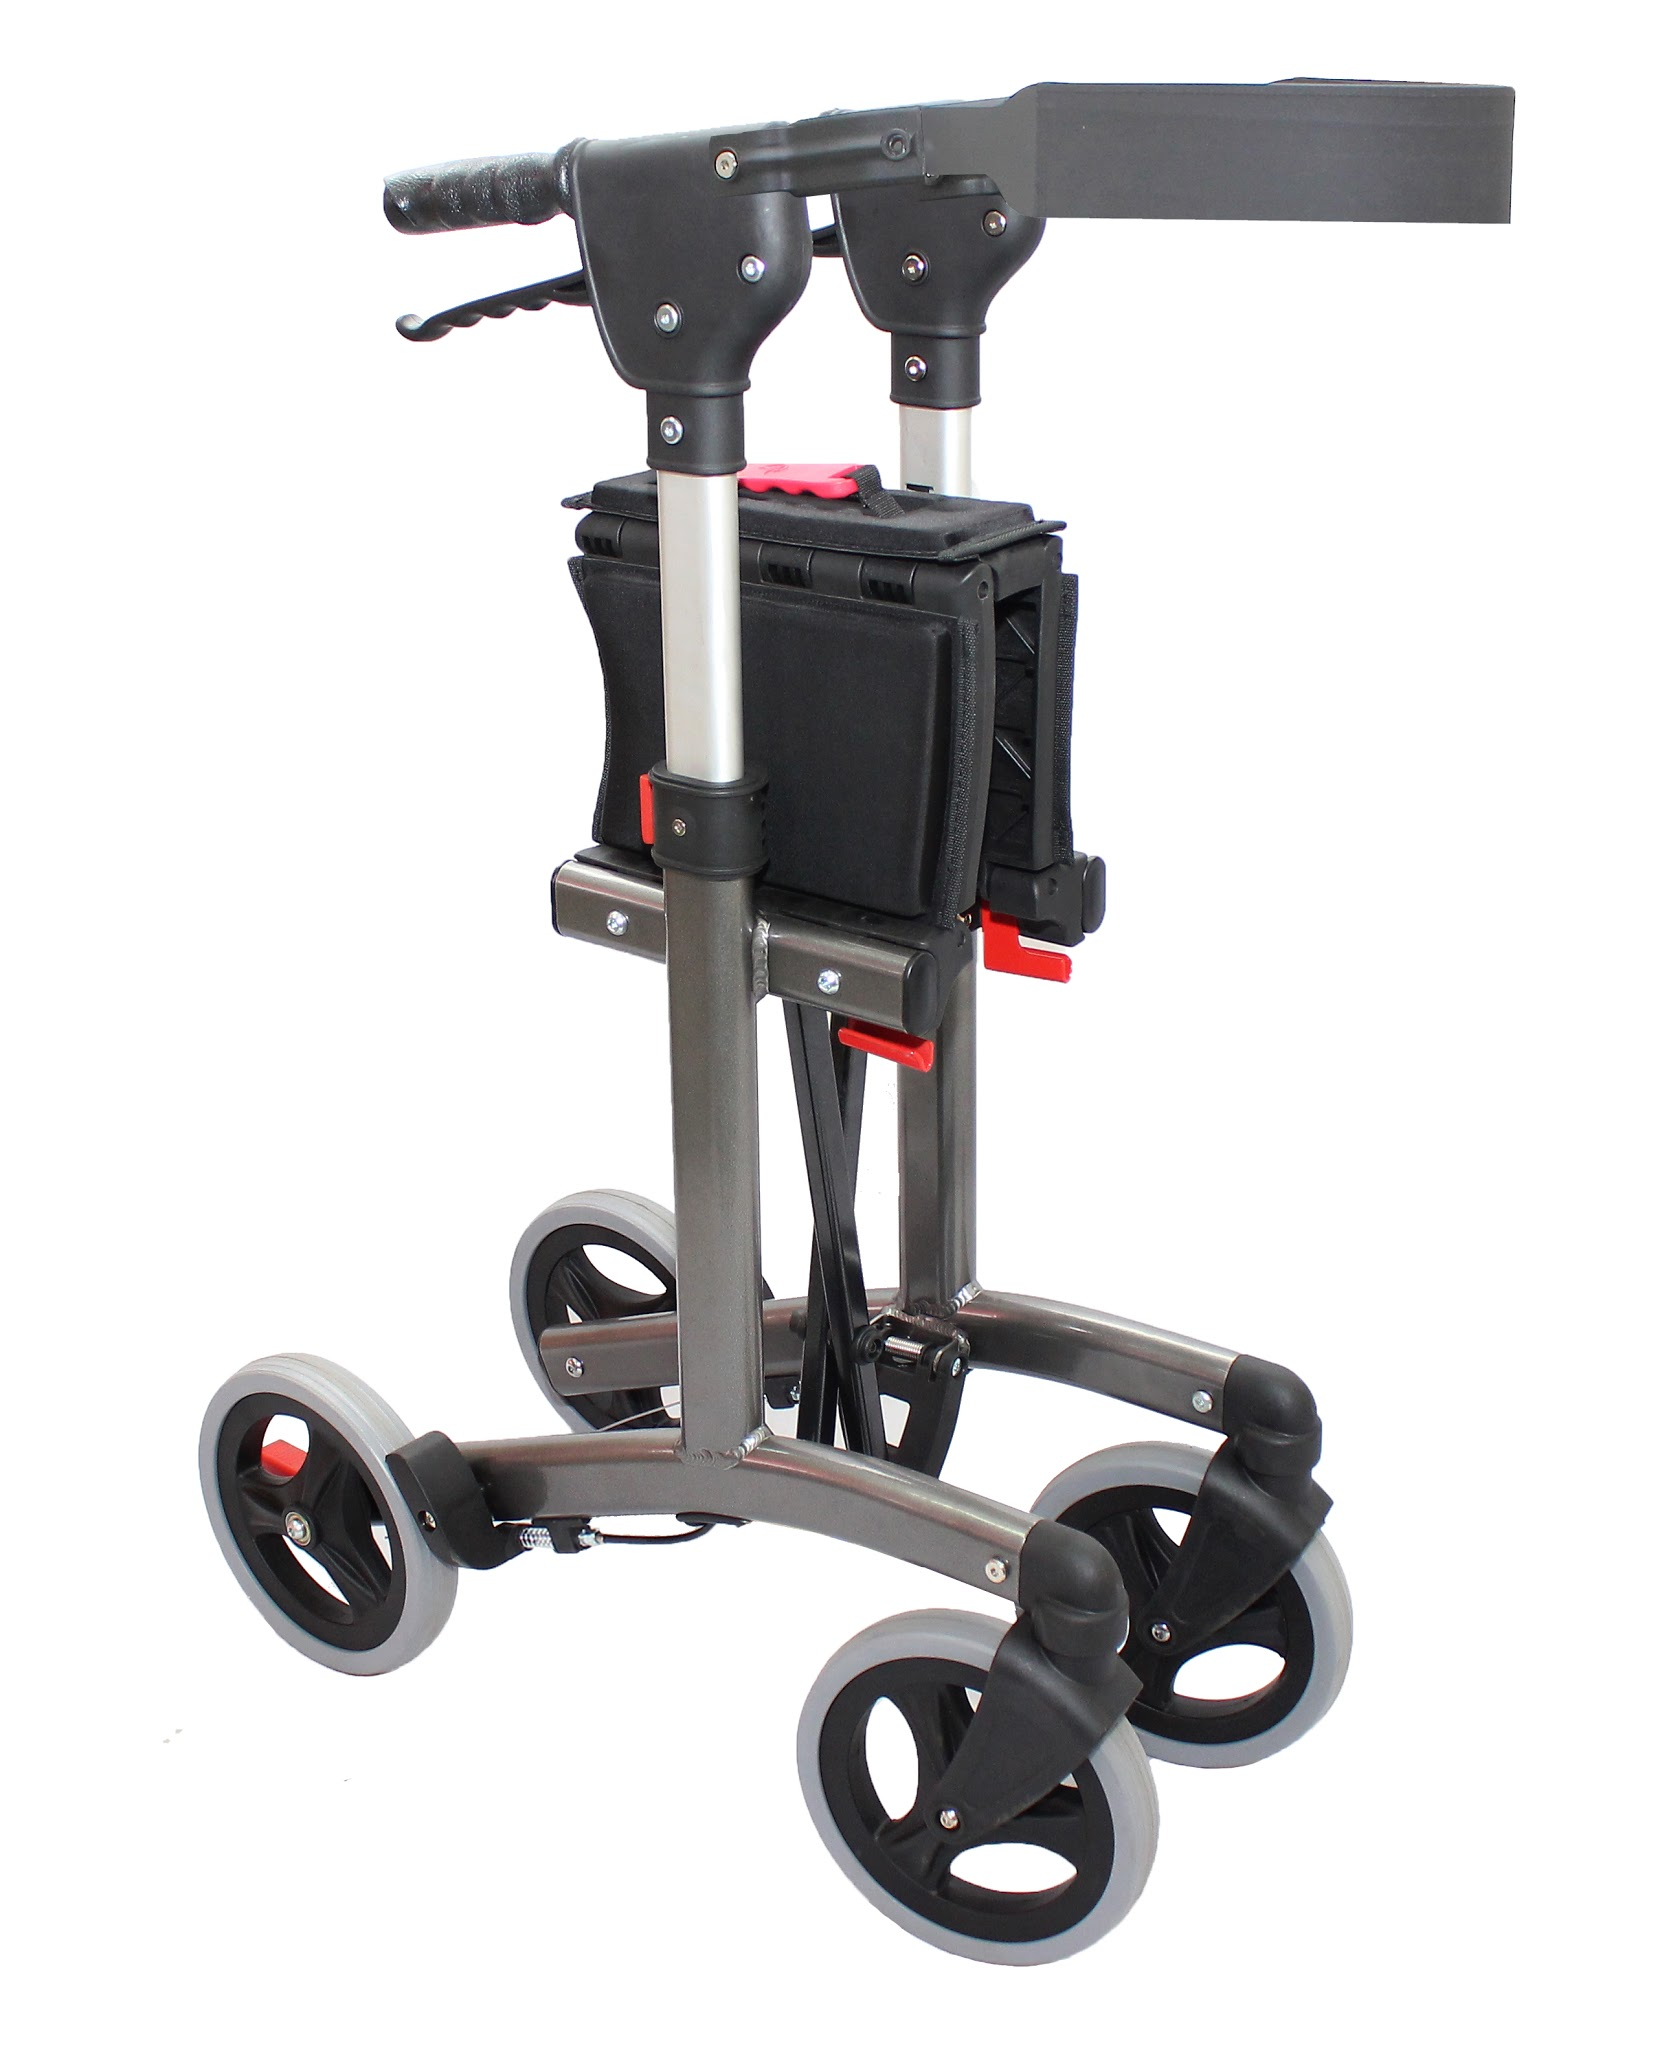 Manual Wheelchairs and Rollators - Google+